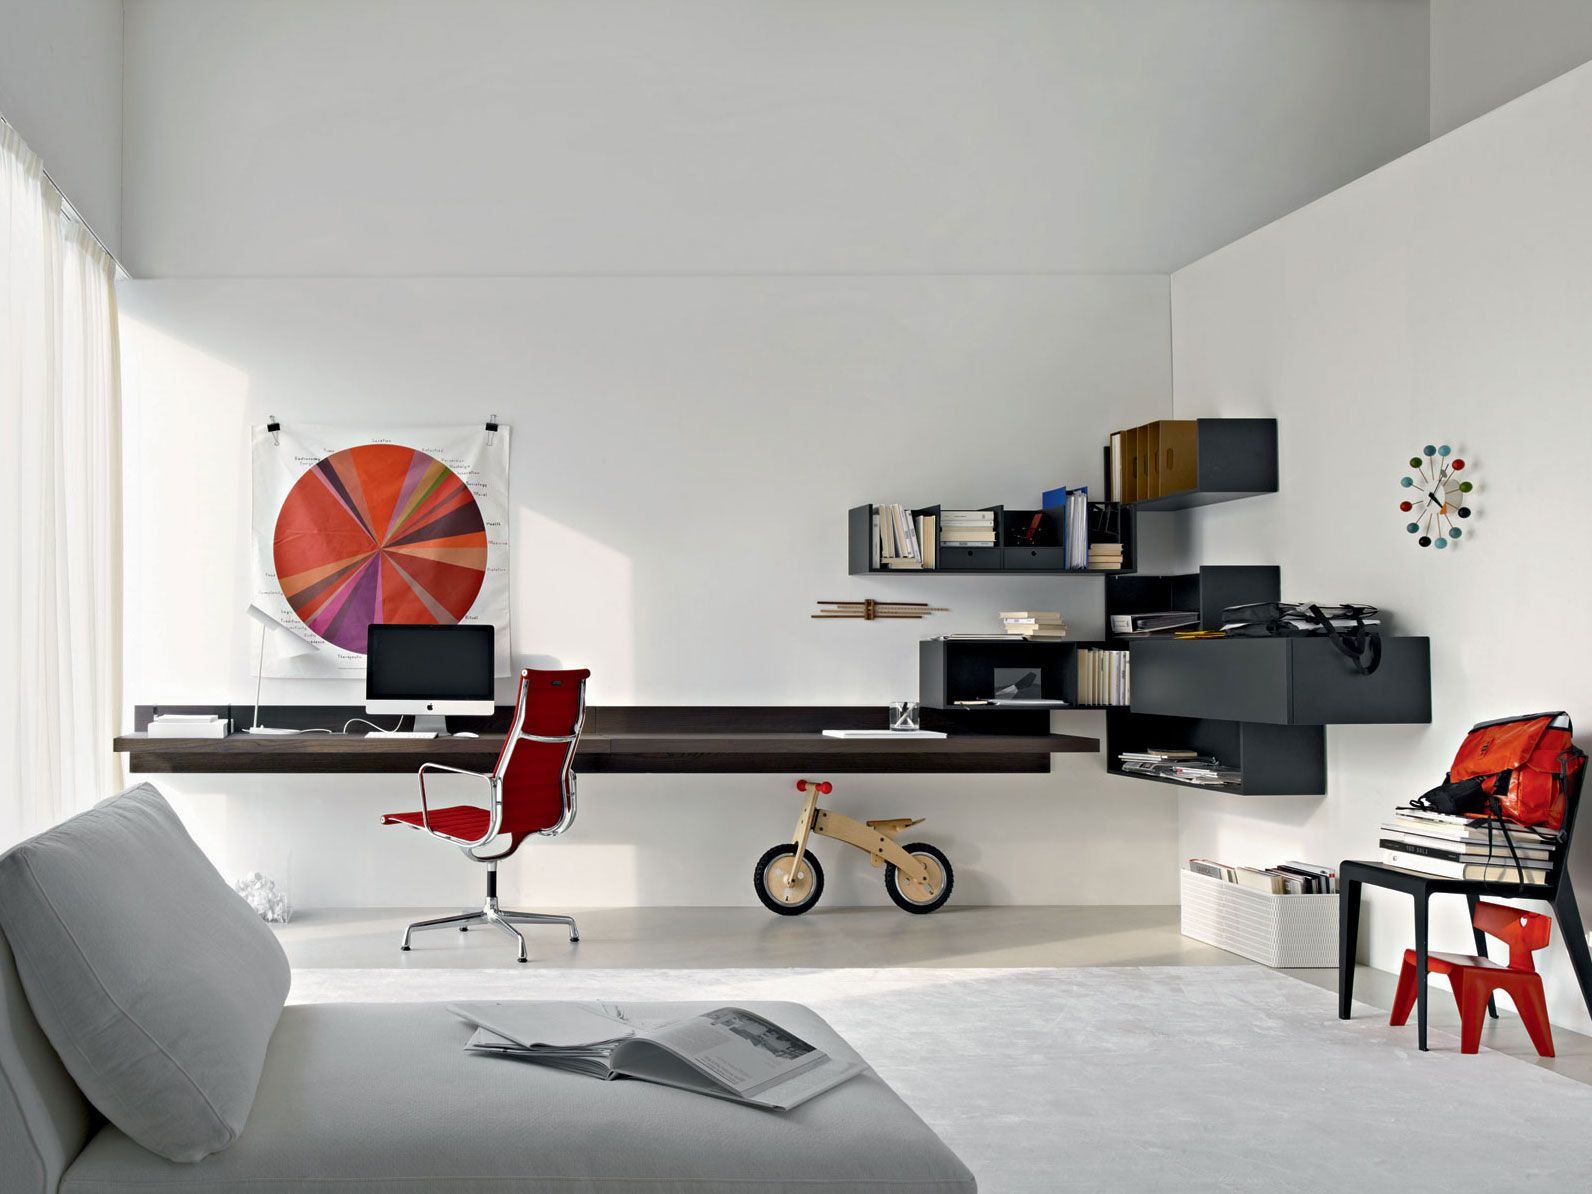 molteni and c Google Search TAZ children's workroom